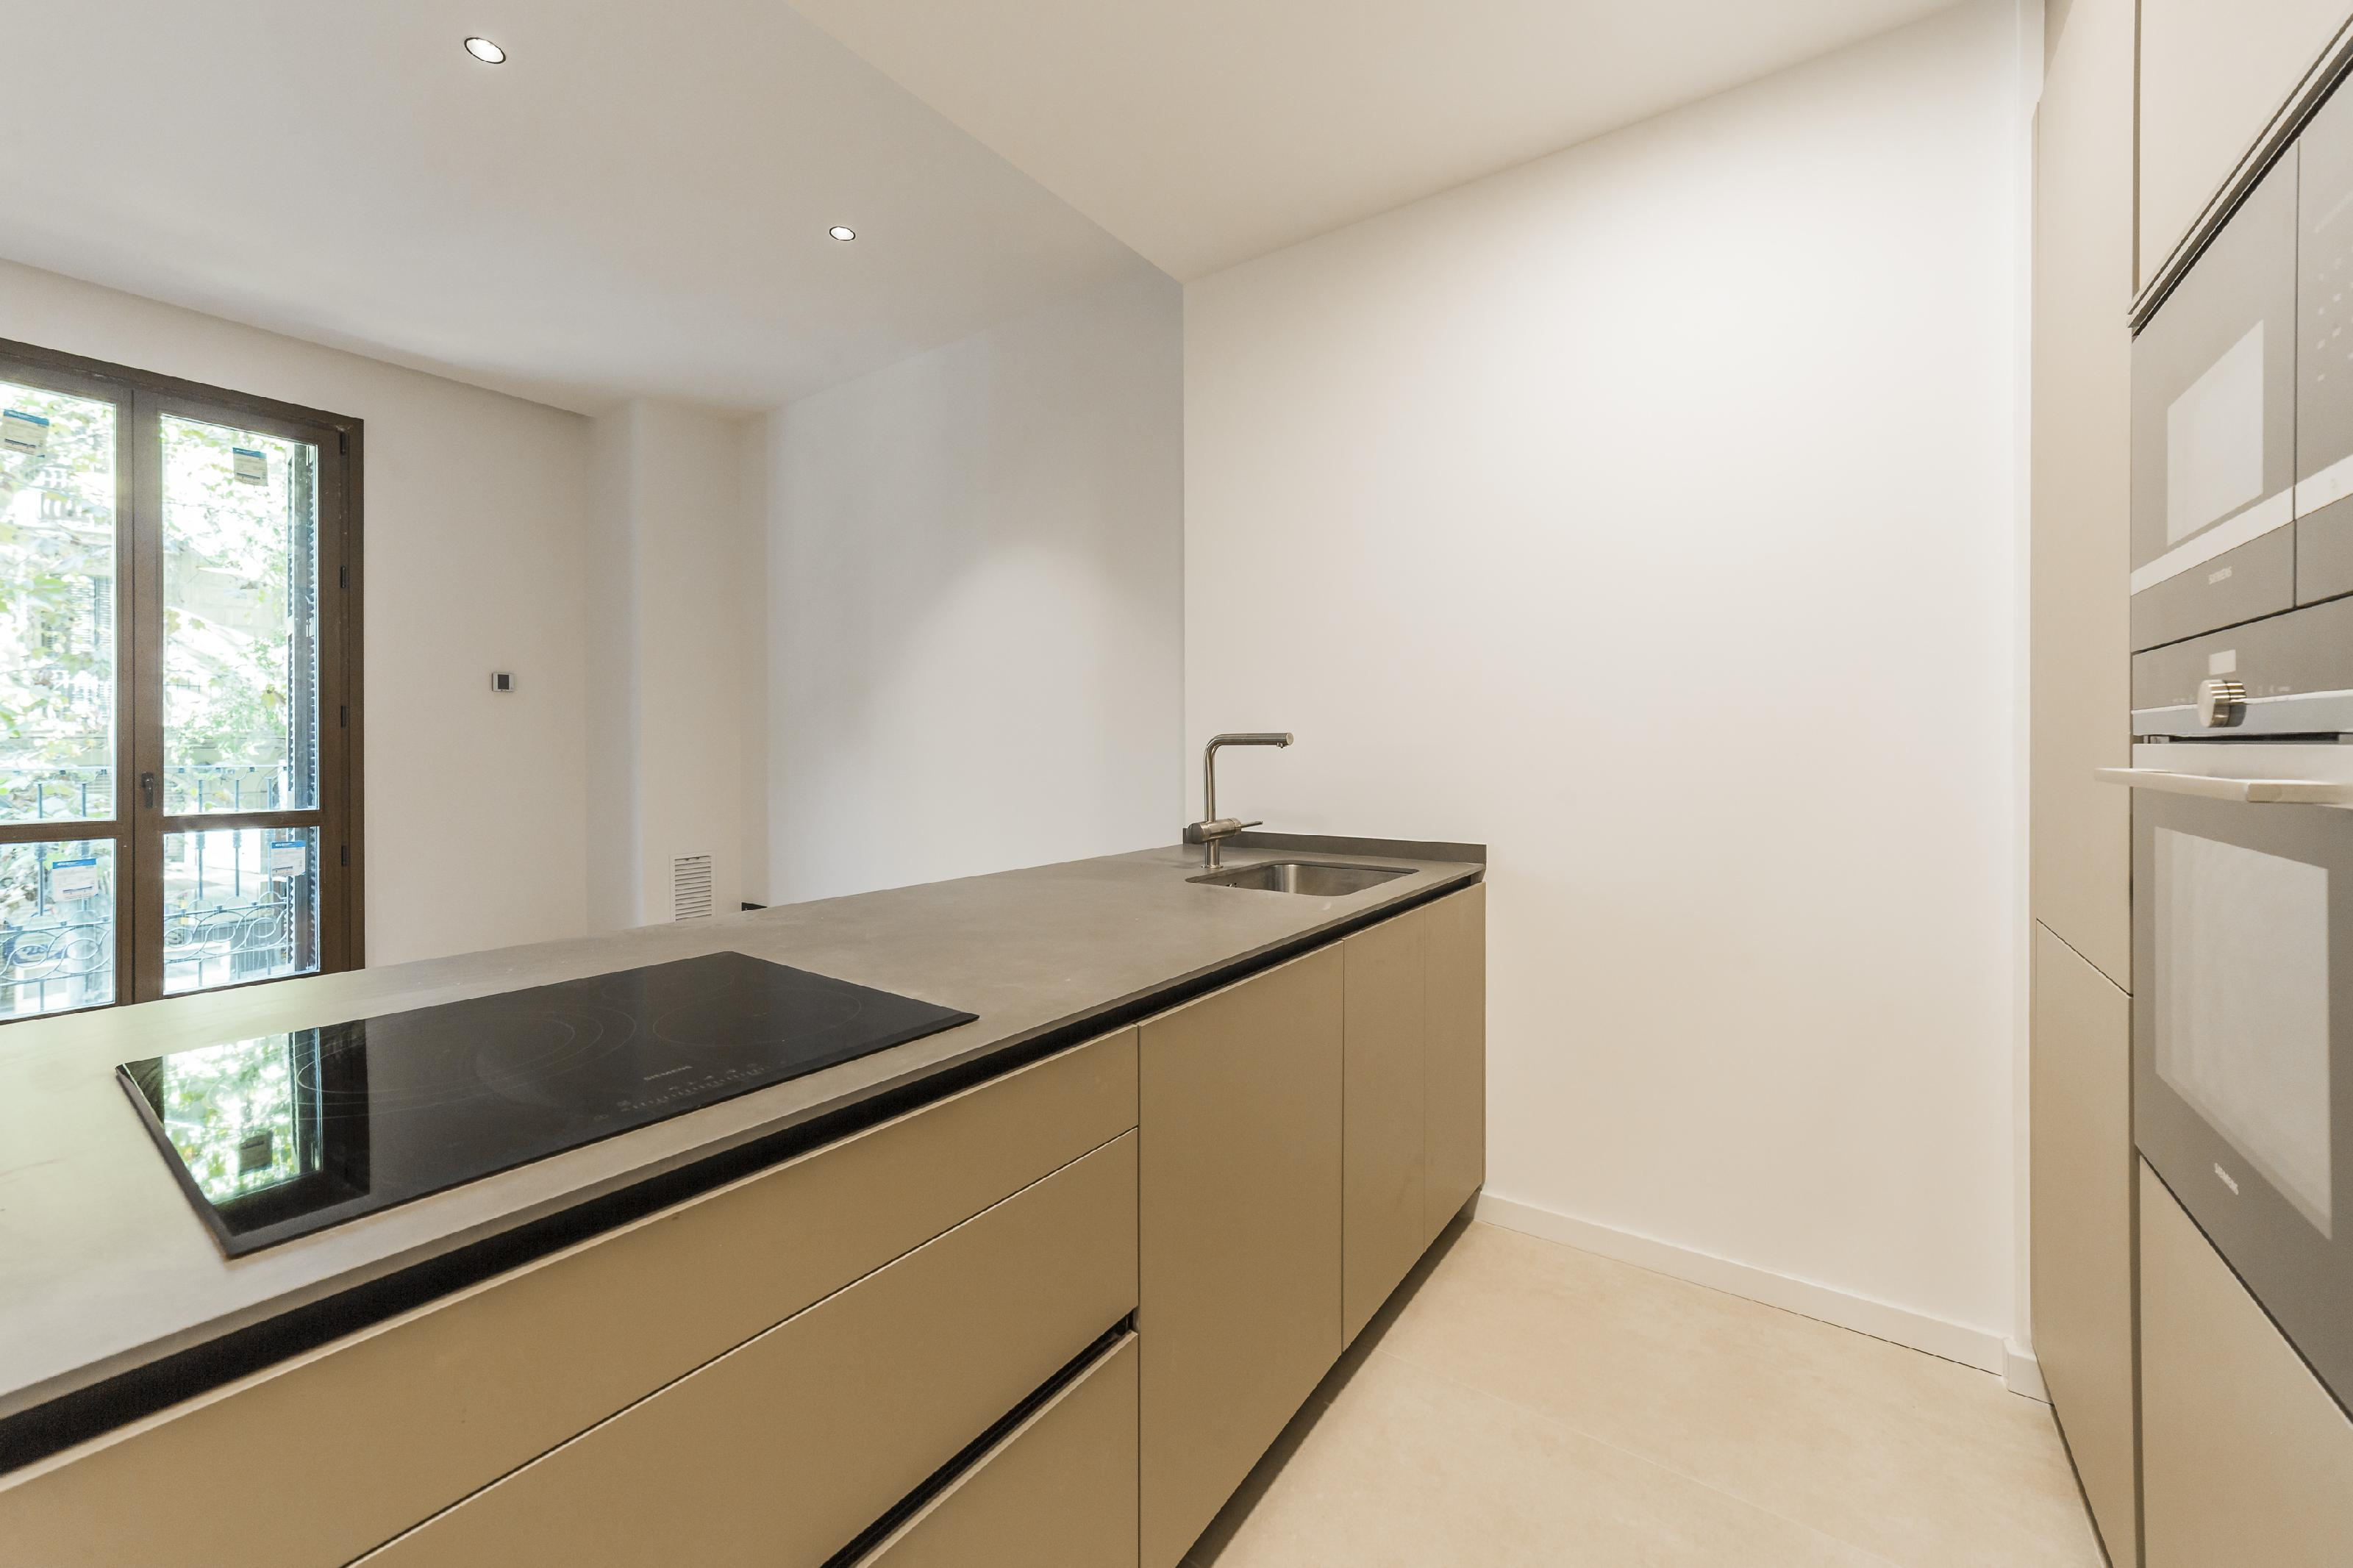 182176 Apartment for sale in Eixample, Old Left Eixample 12